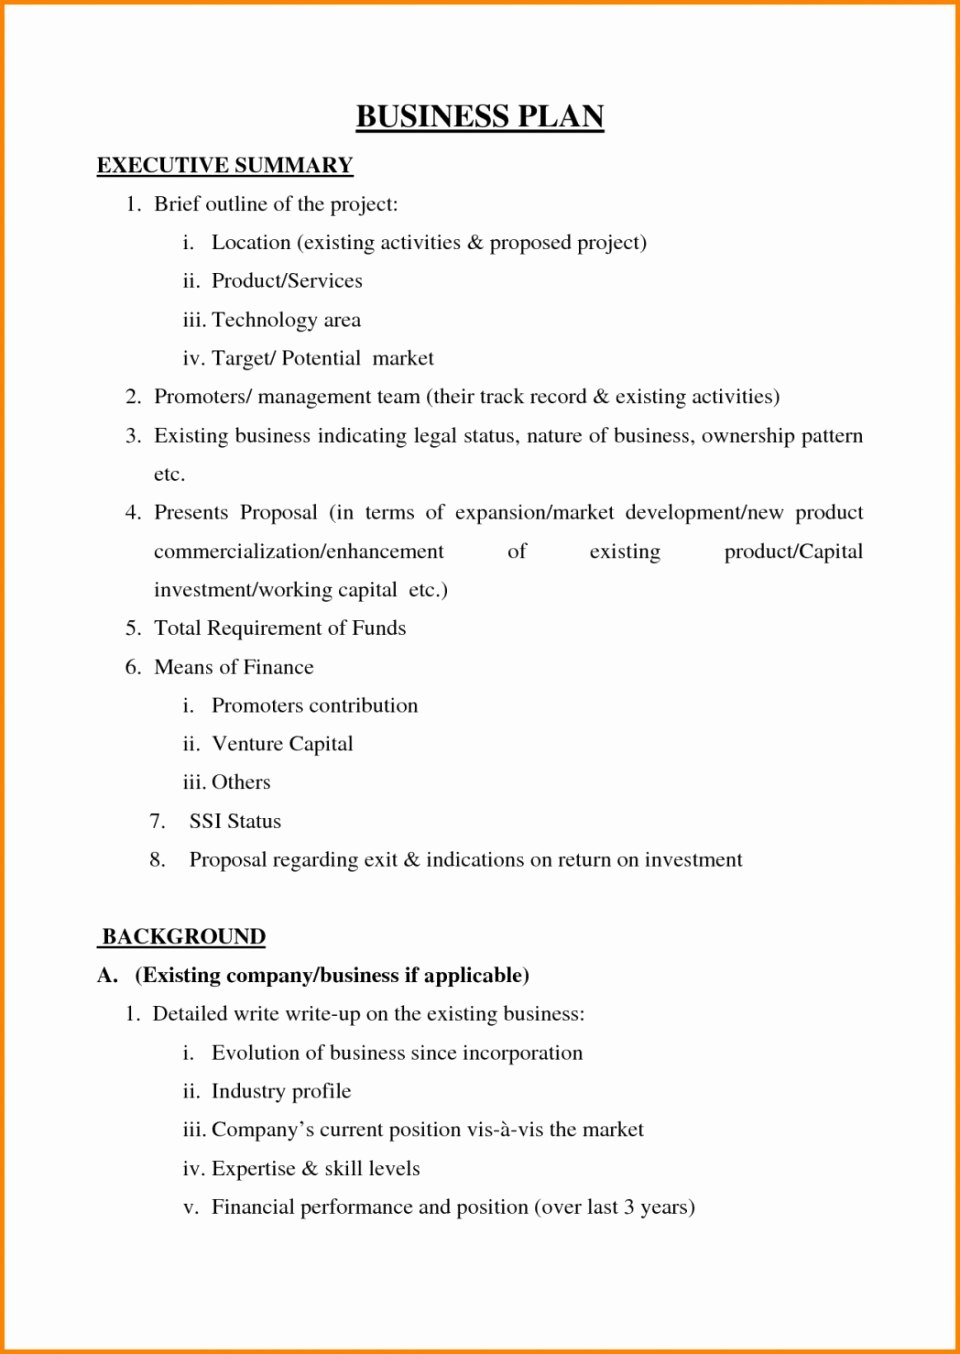 Cleaning Company Business Plan Free Carpet Services Commercial With Company Profile Template For Small Business